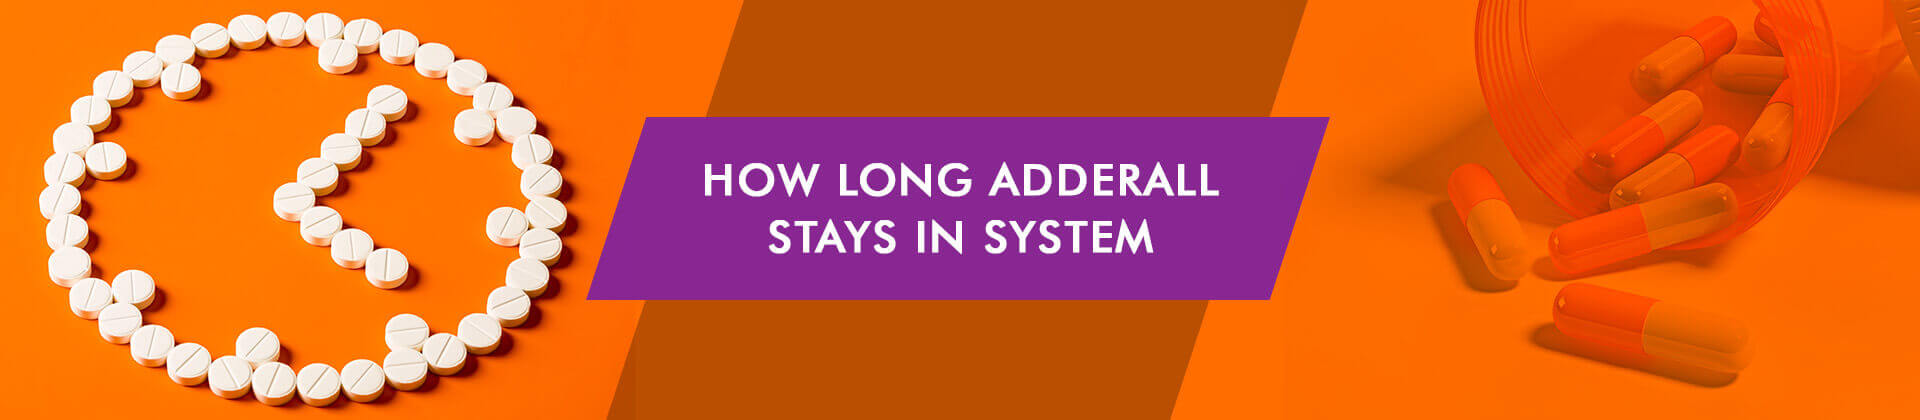 How Long Does Adderall Stay in System?